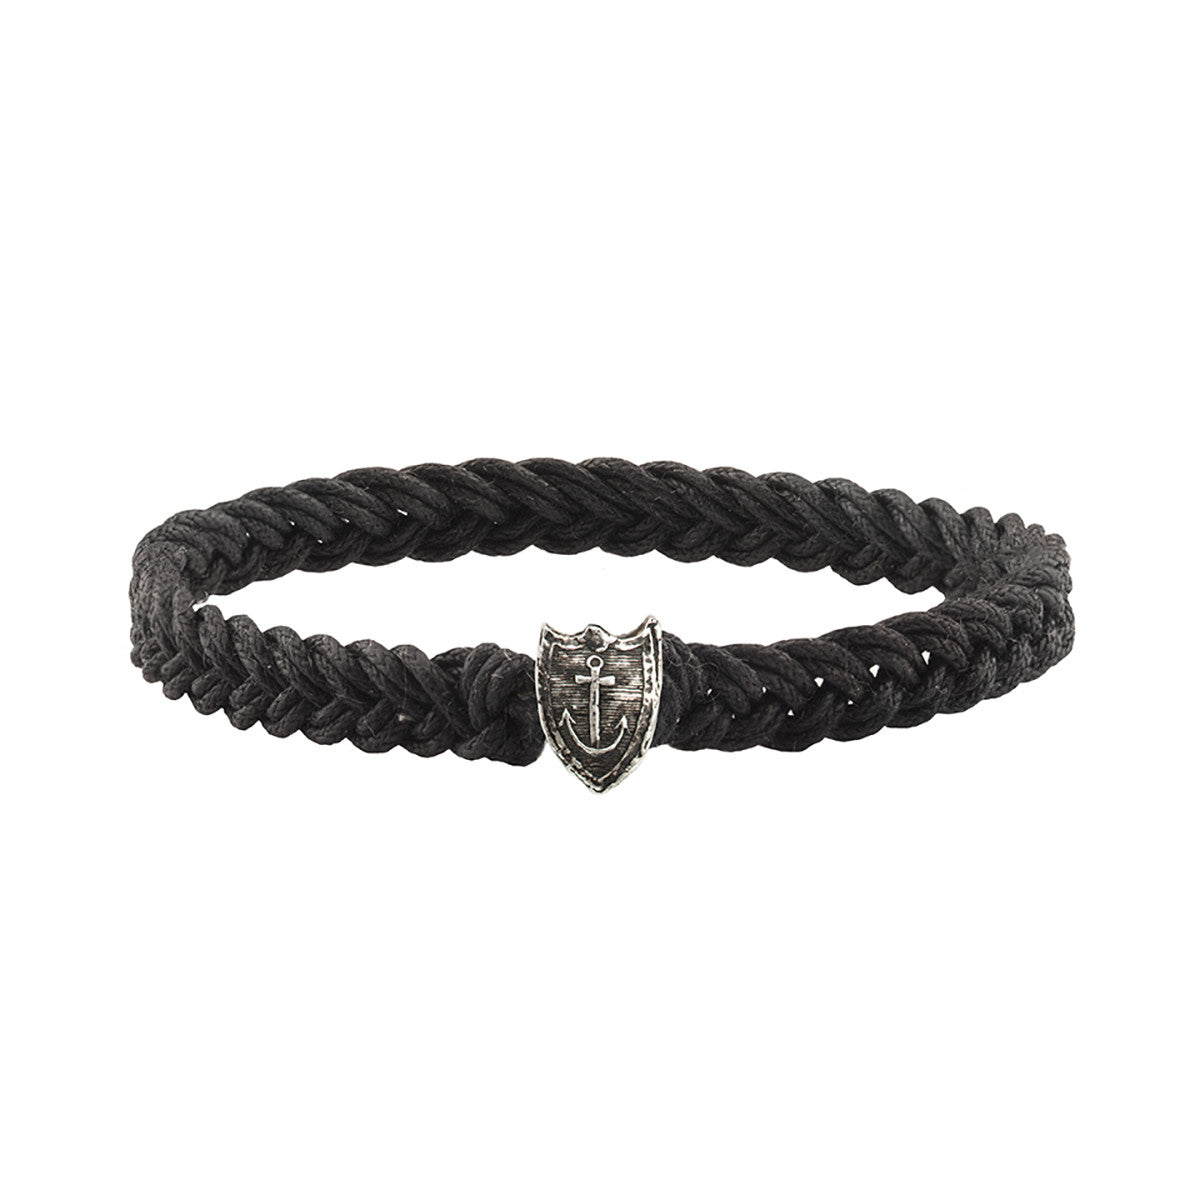 Unshakeable Braided Bracelet - Pyrrha  - 1